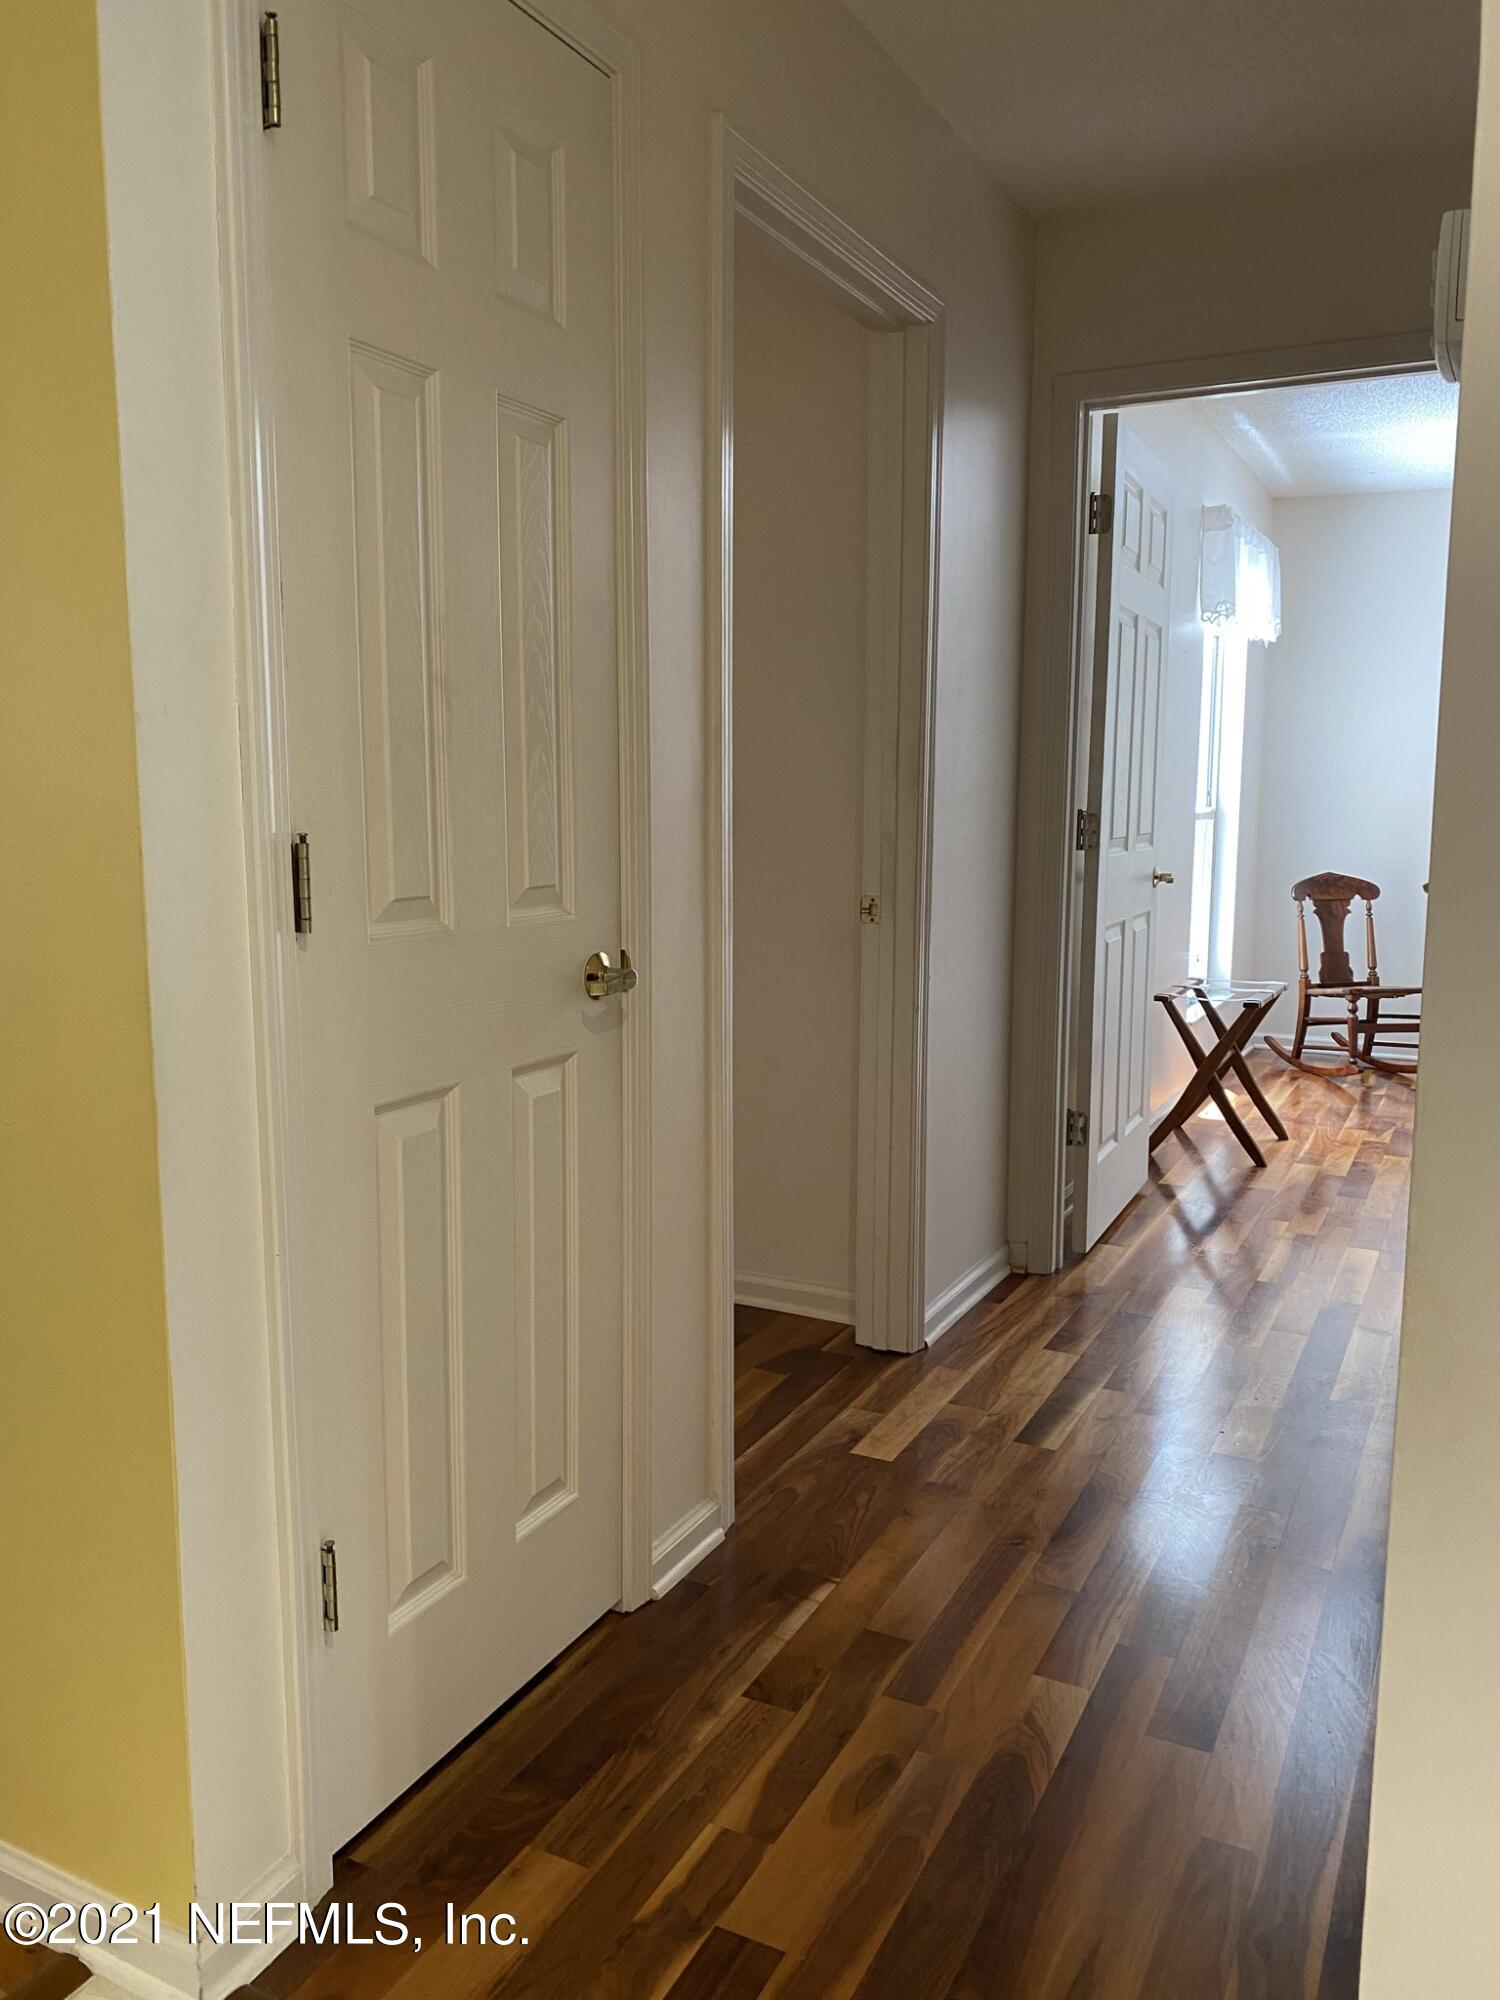 Hall to Bedrooms 2 & 3